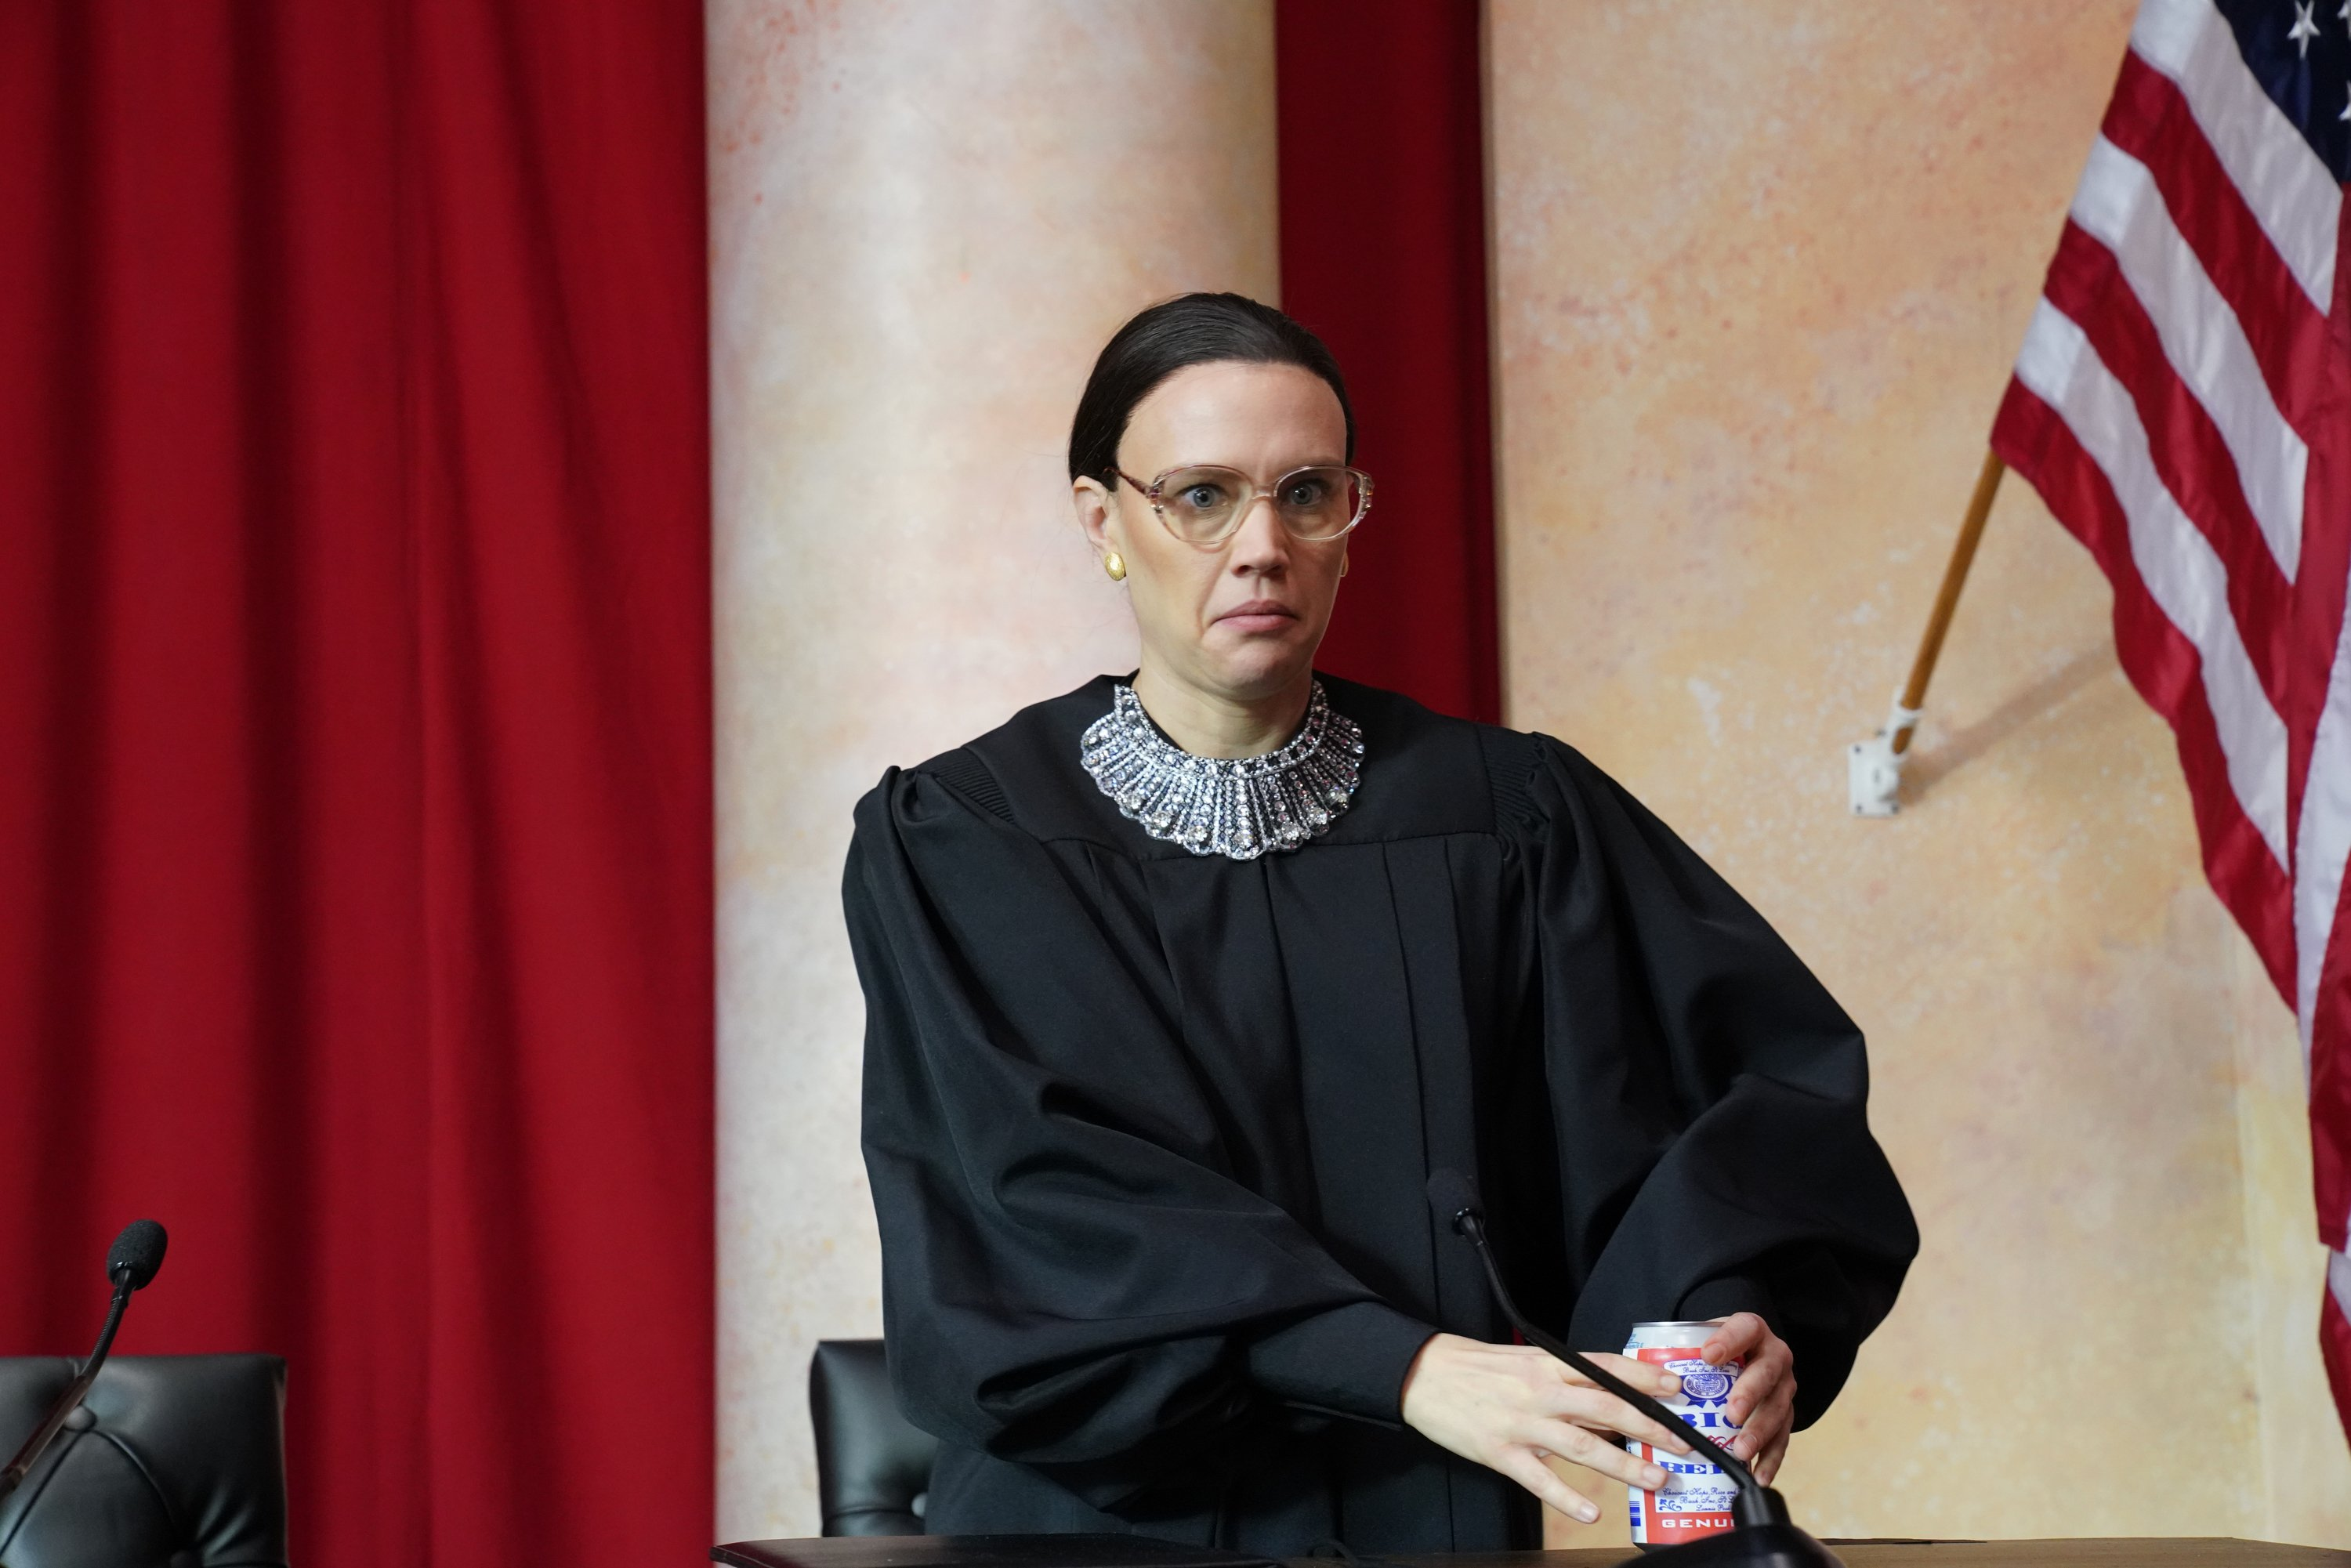 """Kate McKinnon playing the role of Justice Ruth Bader Ginsburg during the """"Courtroom Rap"""" sketch of """"Saturday Night Live"""" in 2018 